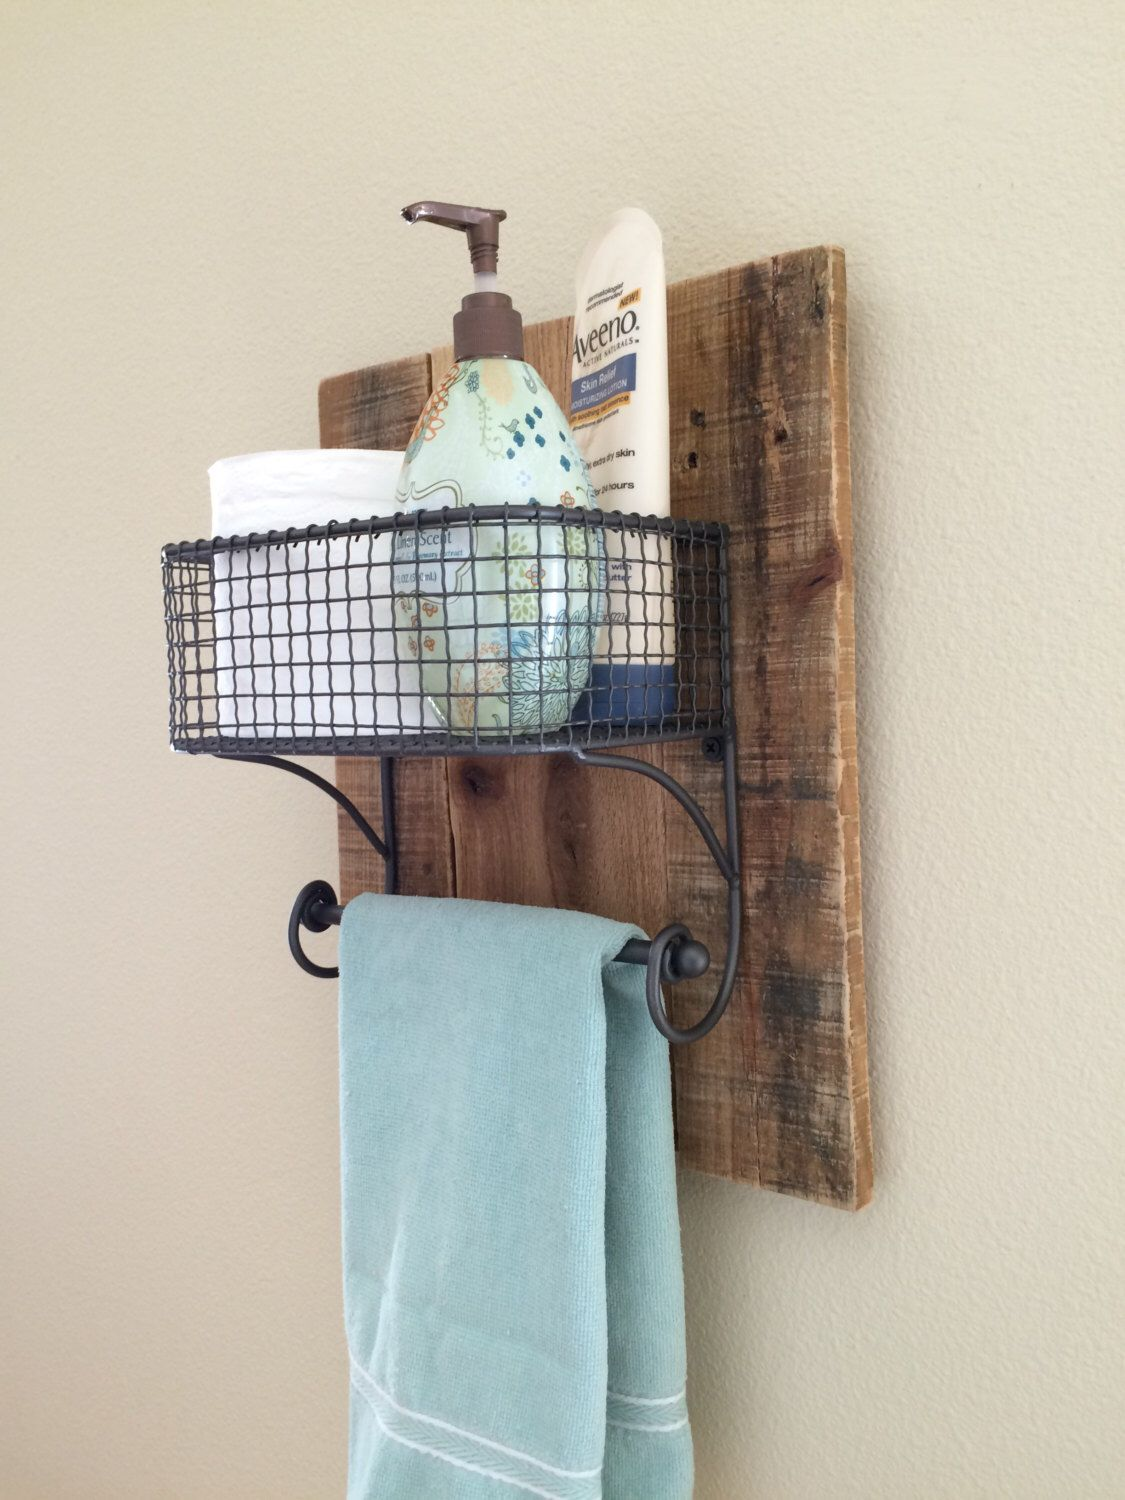 Bathroom Ideas Towel Racks love this functional farmhouse rustic hand towel rack! https://www